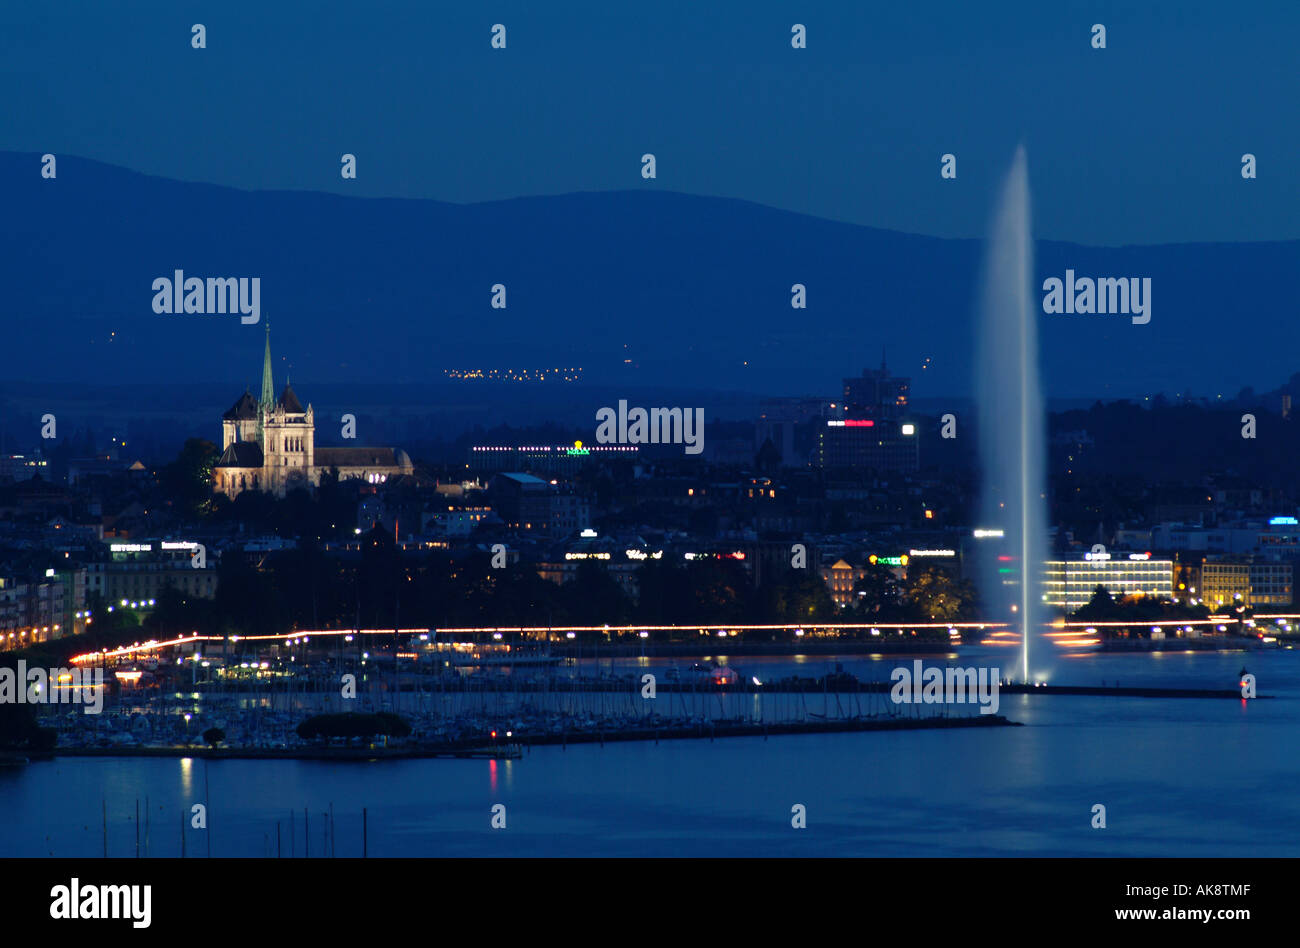 Geneva. Skyline by night witJet d'Eau. Lac Leman and cathedral St. Pierre. - Stock Image